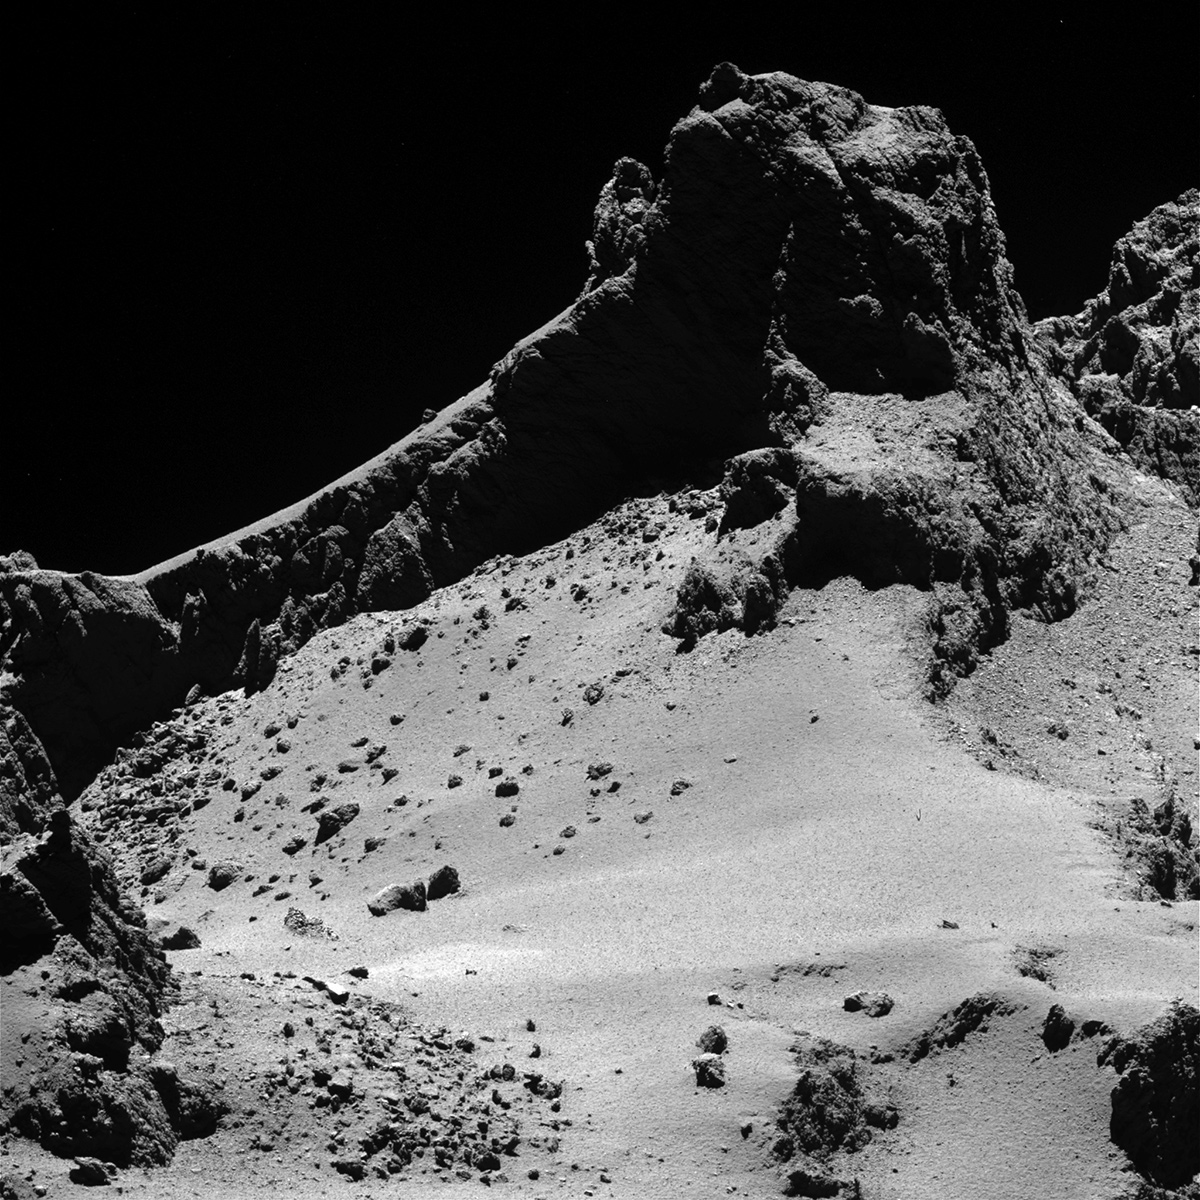 A photo of the smaller of Comet 67P/Churyumov–Gerasimenko's two lobes